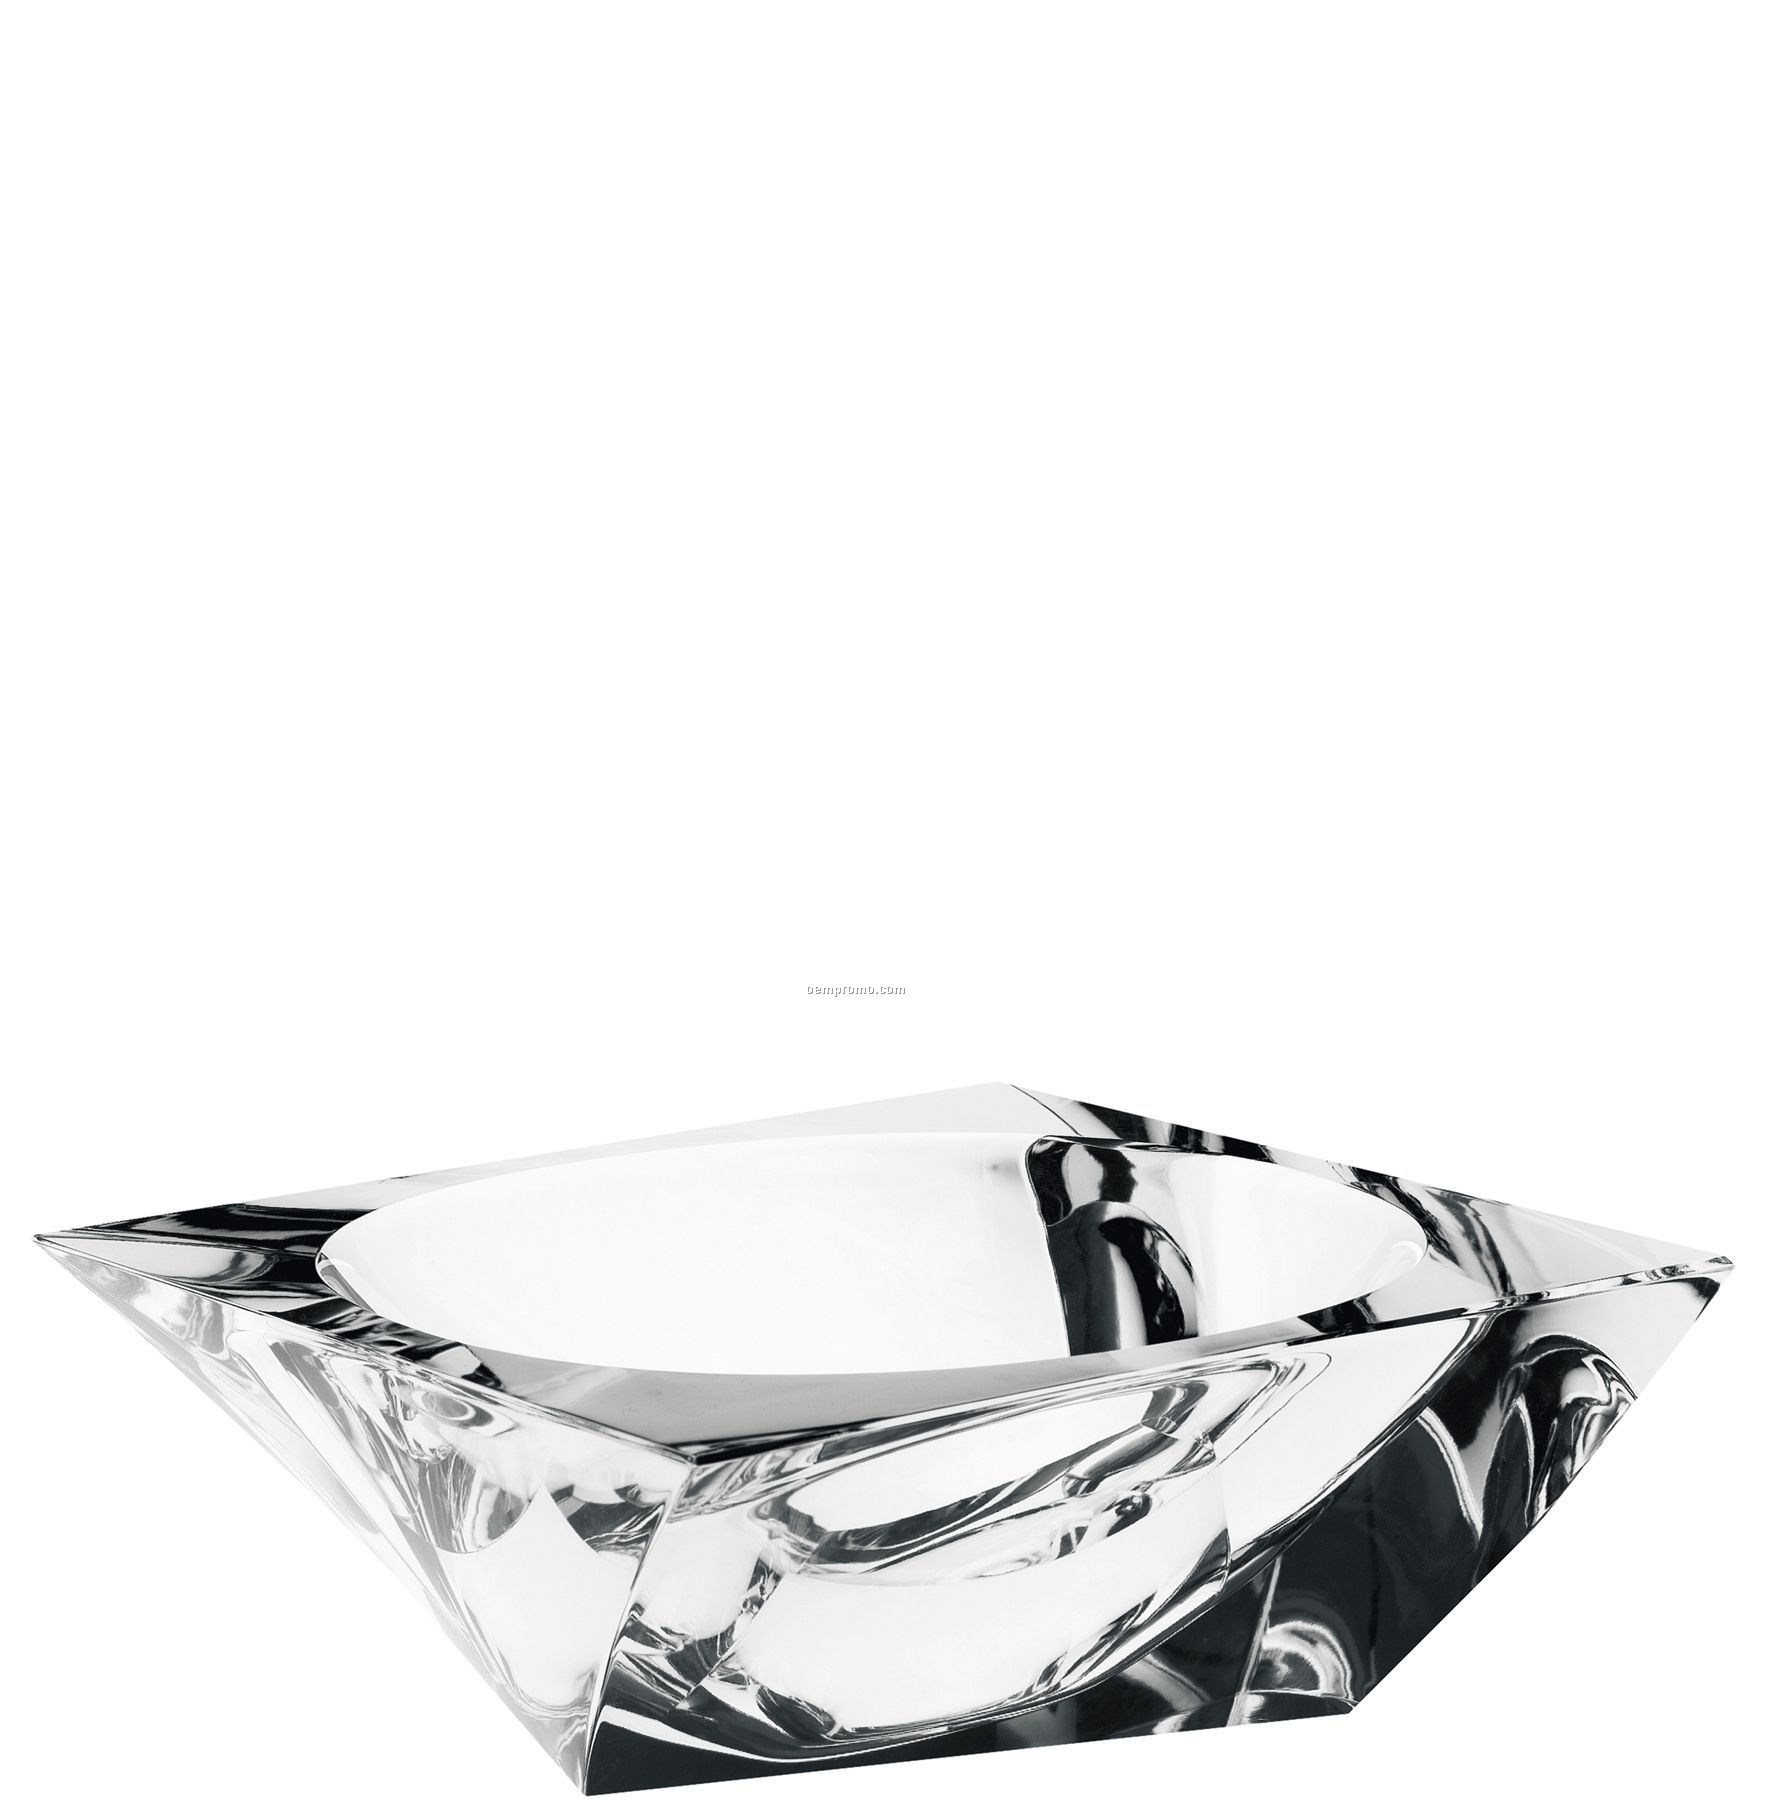 Tornado Twisted Crystal Bowl By Jan Johansson (3